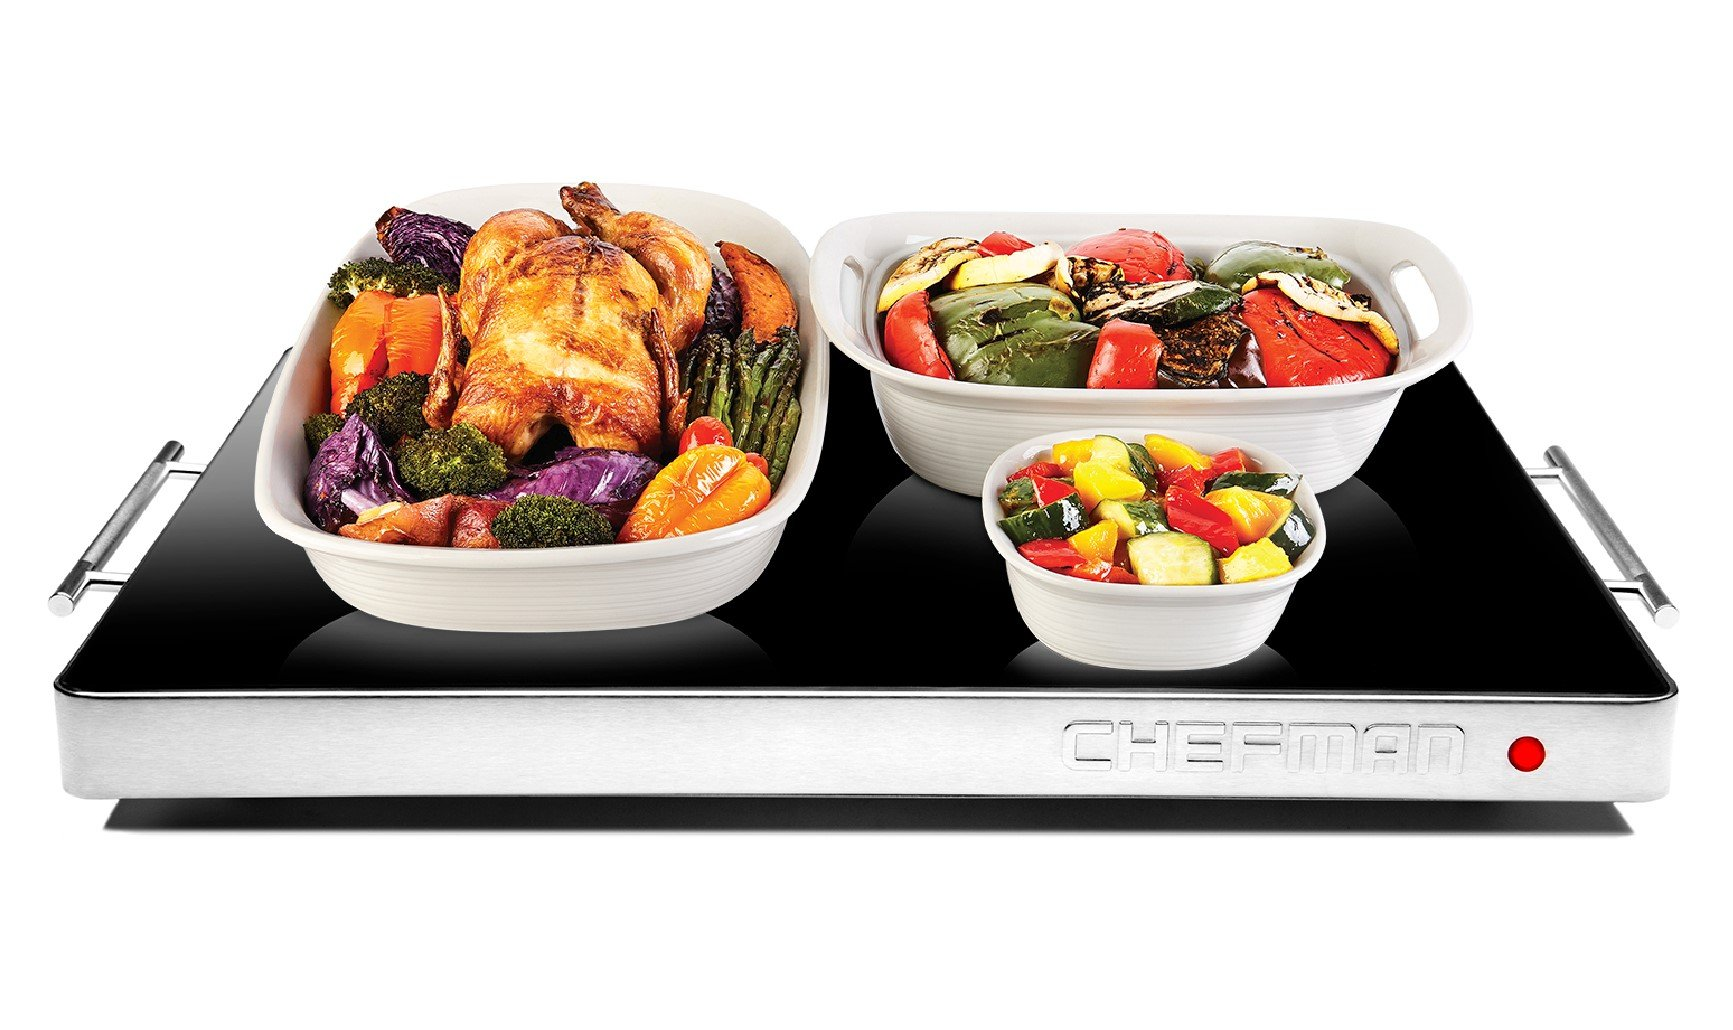 Chefman Electric Warming Tray with Adjustable Temperature Control, Perfect For Buffets, Restaurants, Parties, Events, Home Dinners, Glass Top Large 21'' x 16'' Surface Keeps Food Hot - Black by Chefman